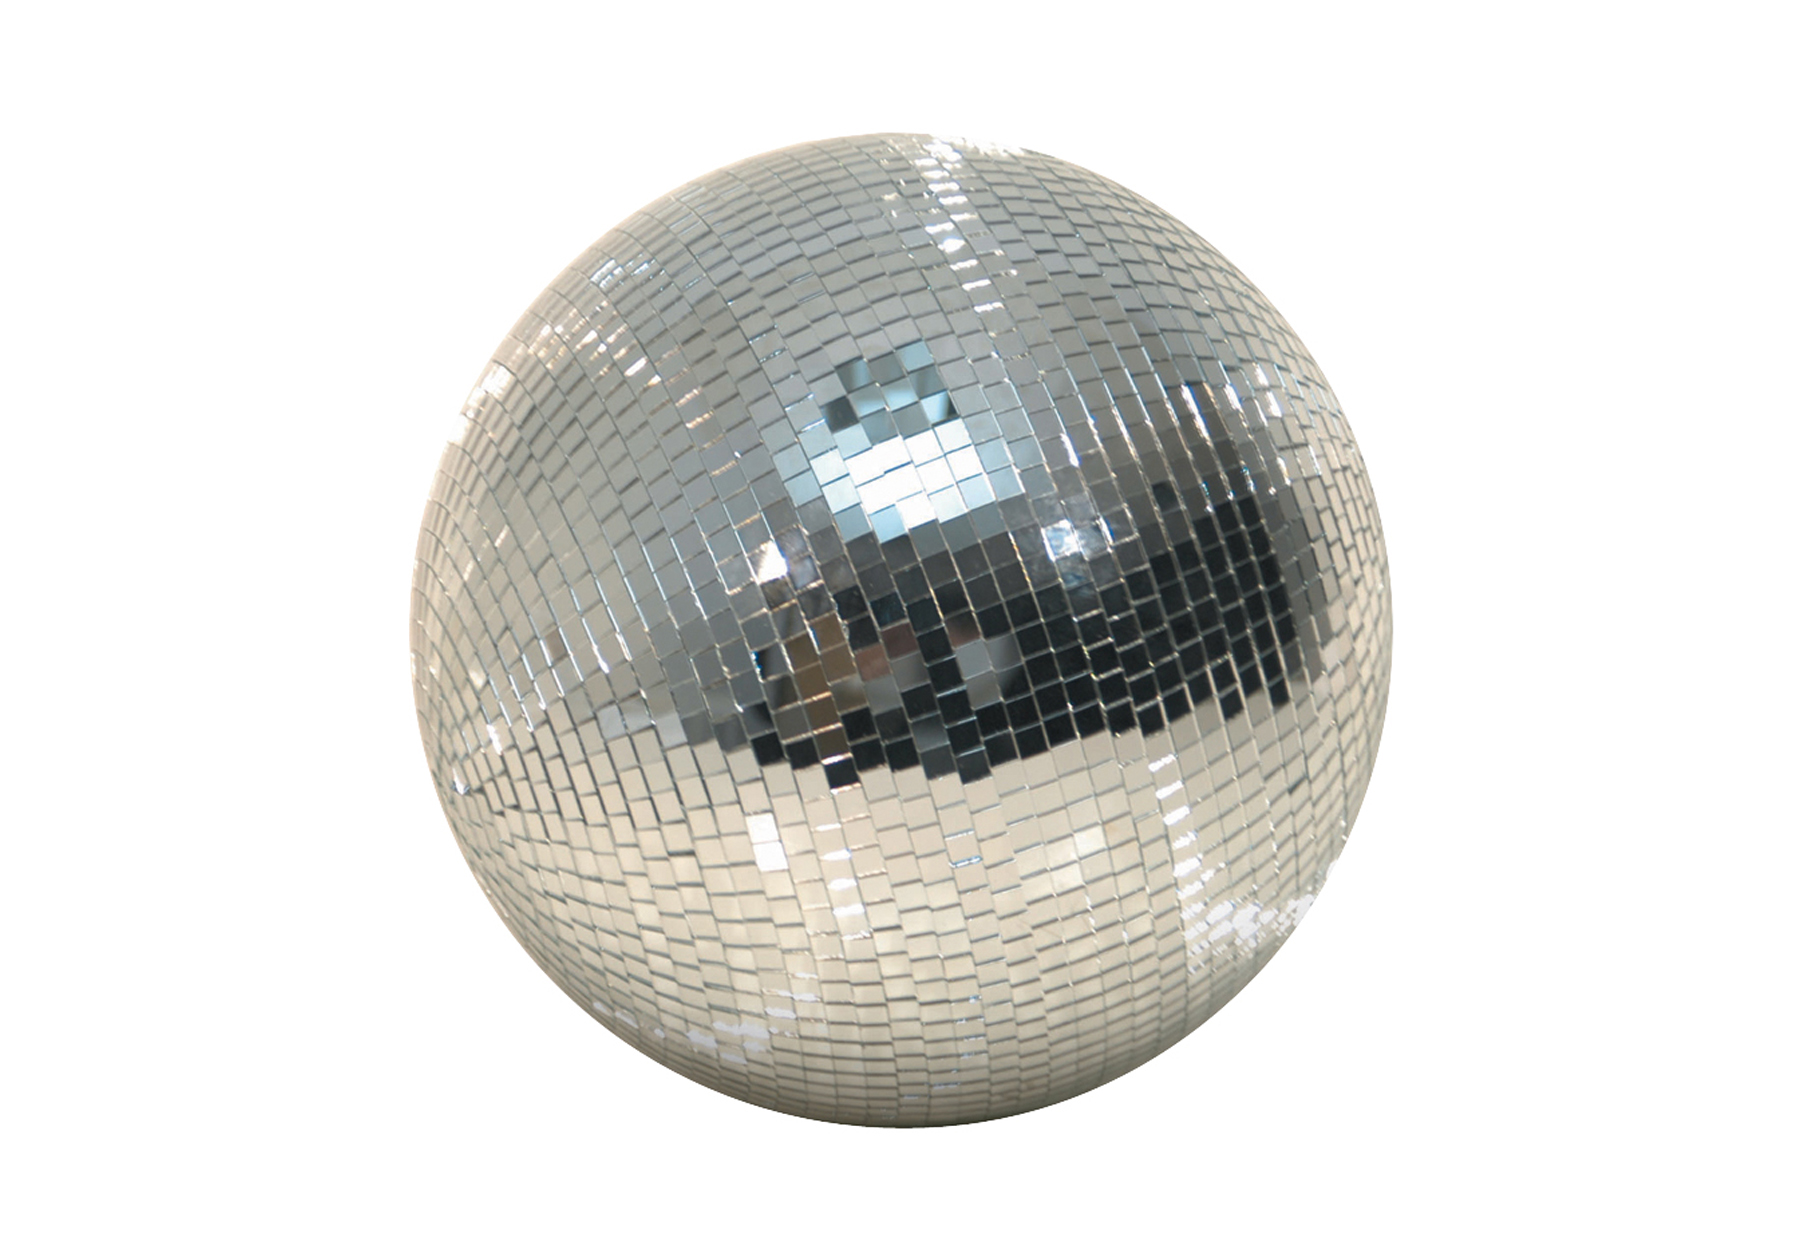 Hire mirrorball disco glitter ball 100cm 1m dmx motor in Cardiff, Swansea, Pembrokeshire, Carmarthenshire, South West Wales